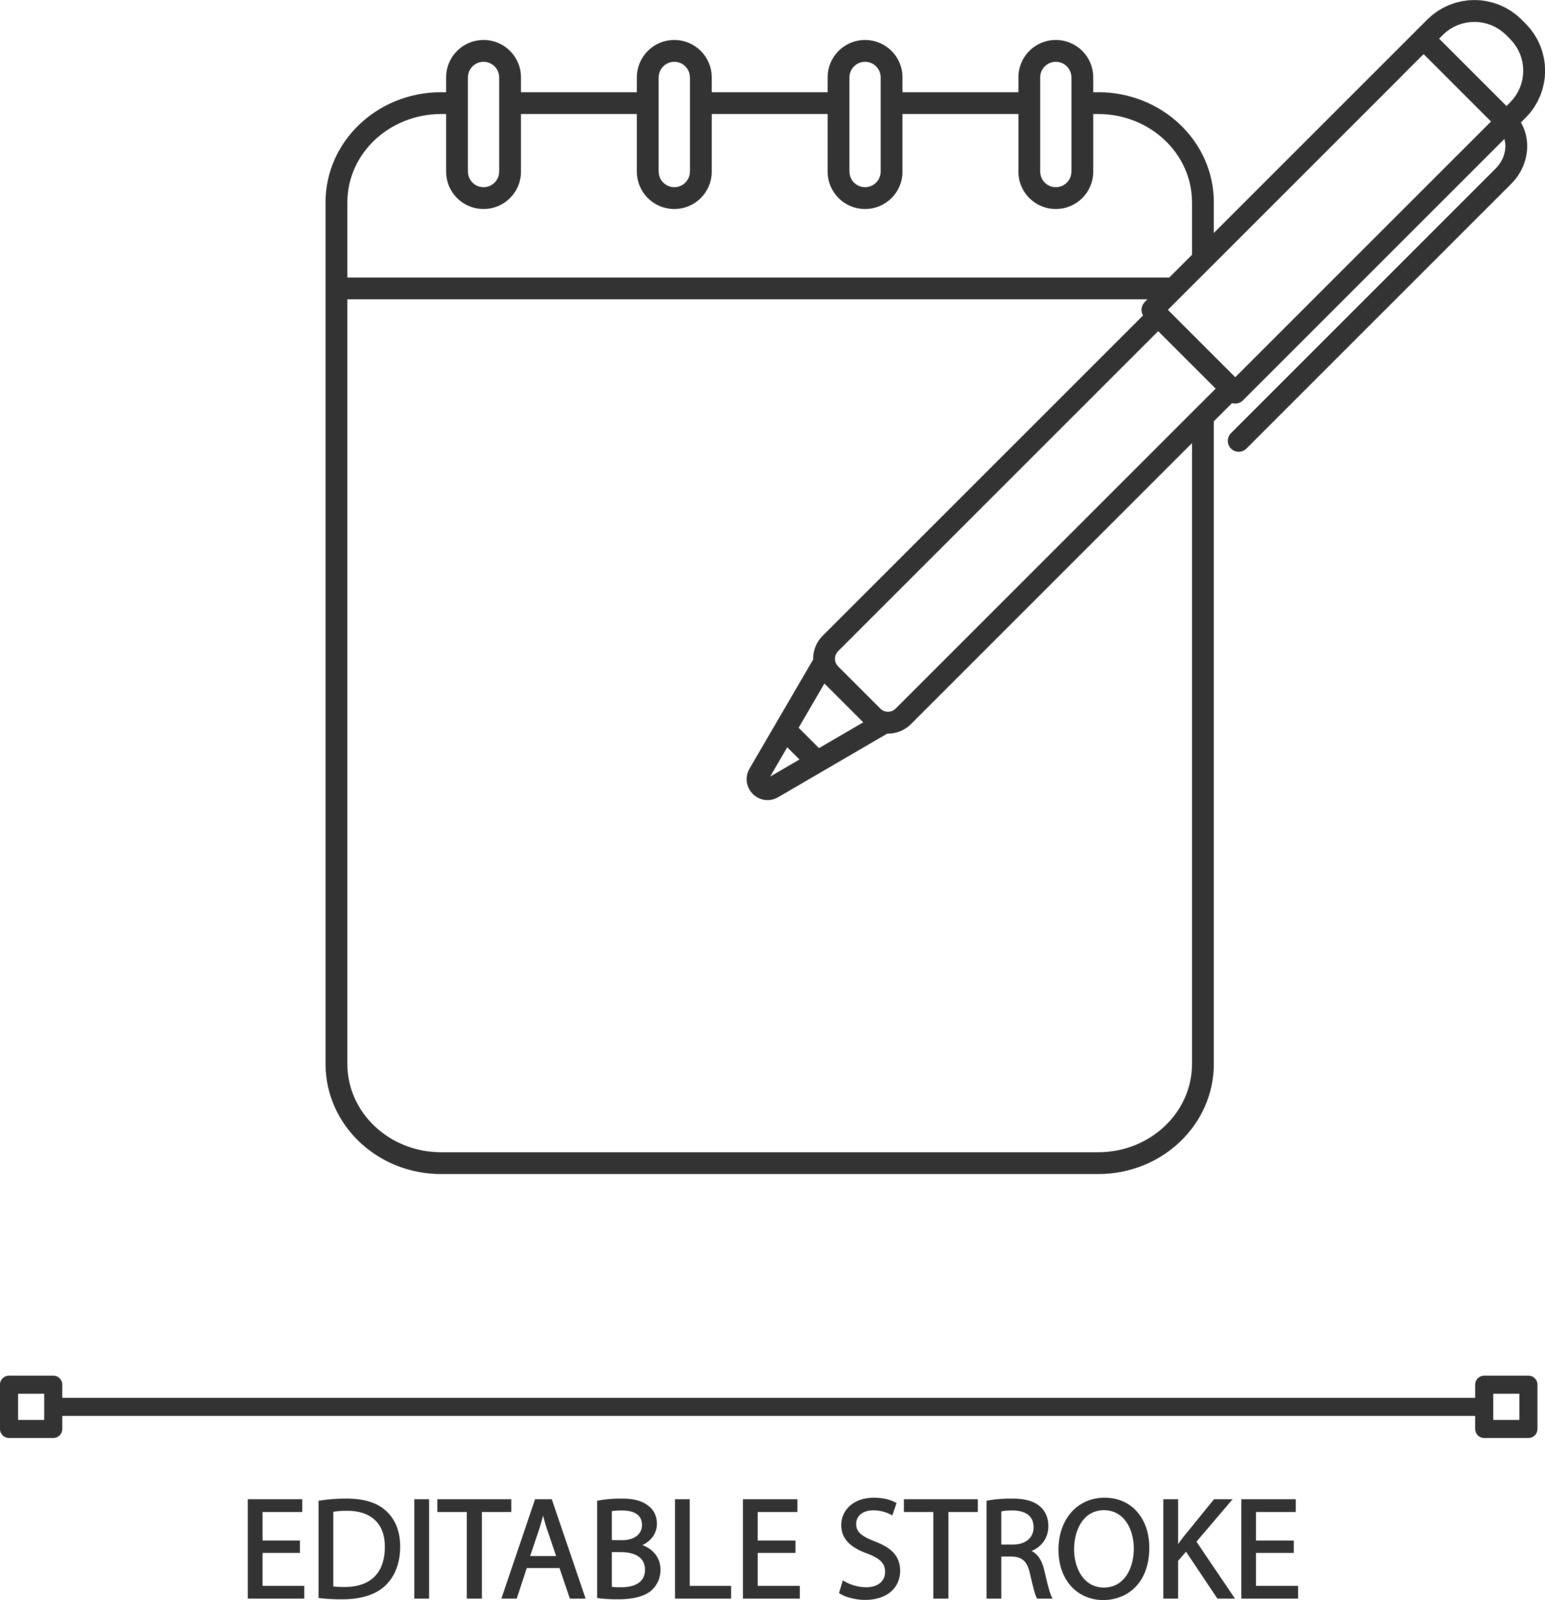 Notepad with pen linear icon. Taking notes. Thin line illustration. To do list. Planner. Action planning. Business plans, goals, tasks writing down. Contour symbol. Vector isolated outline drawing. Editable stroke